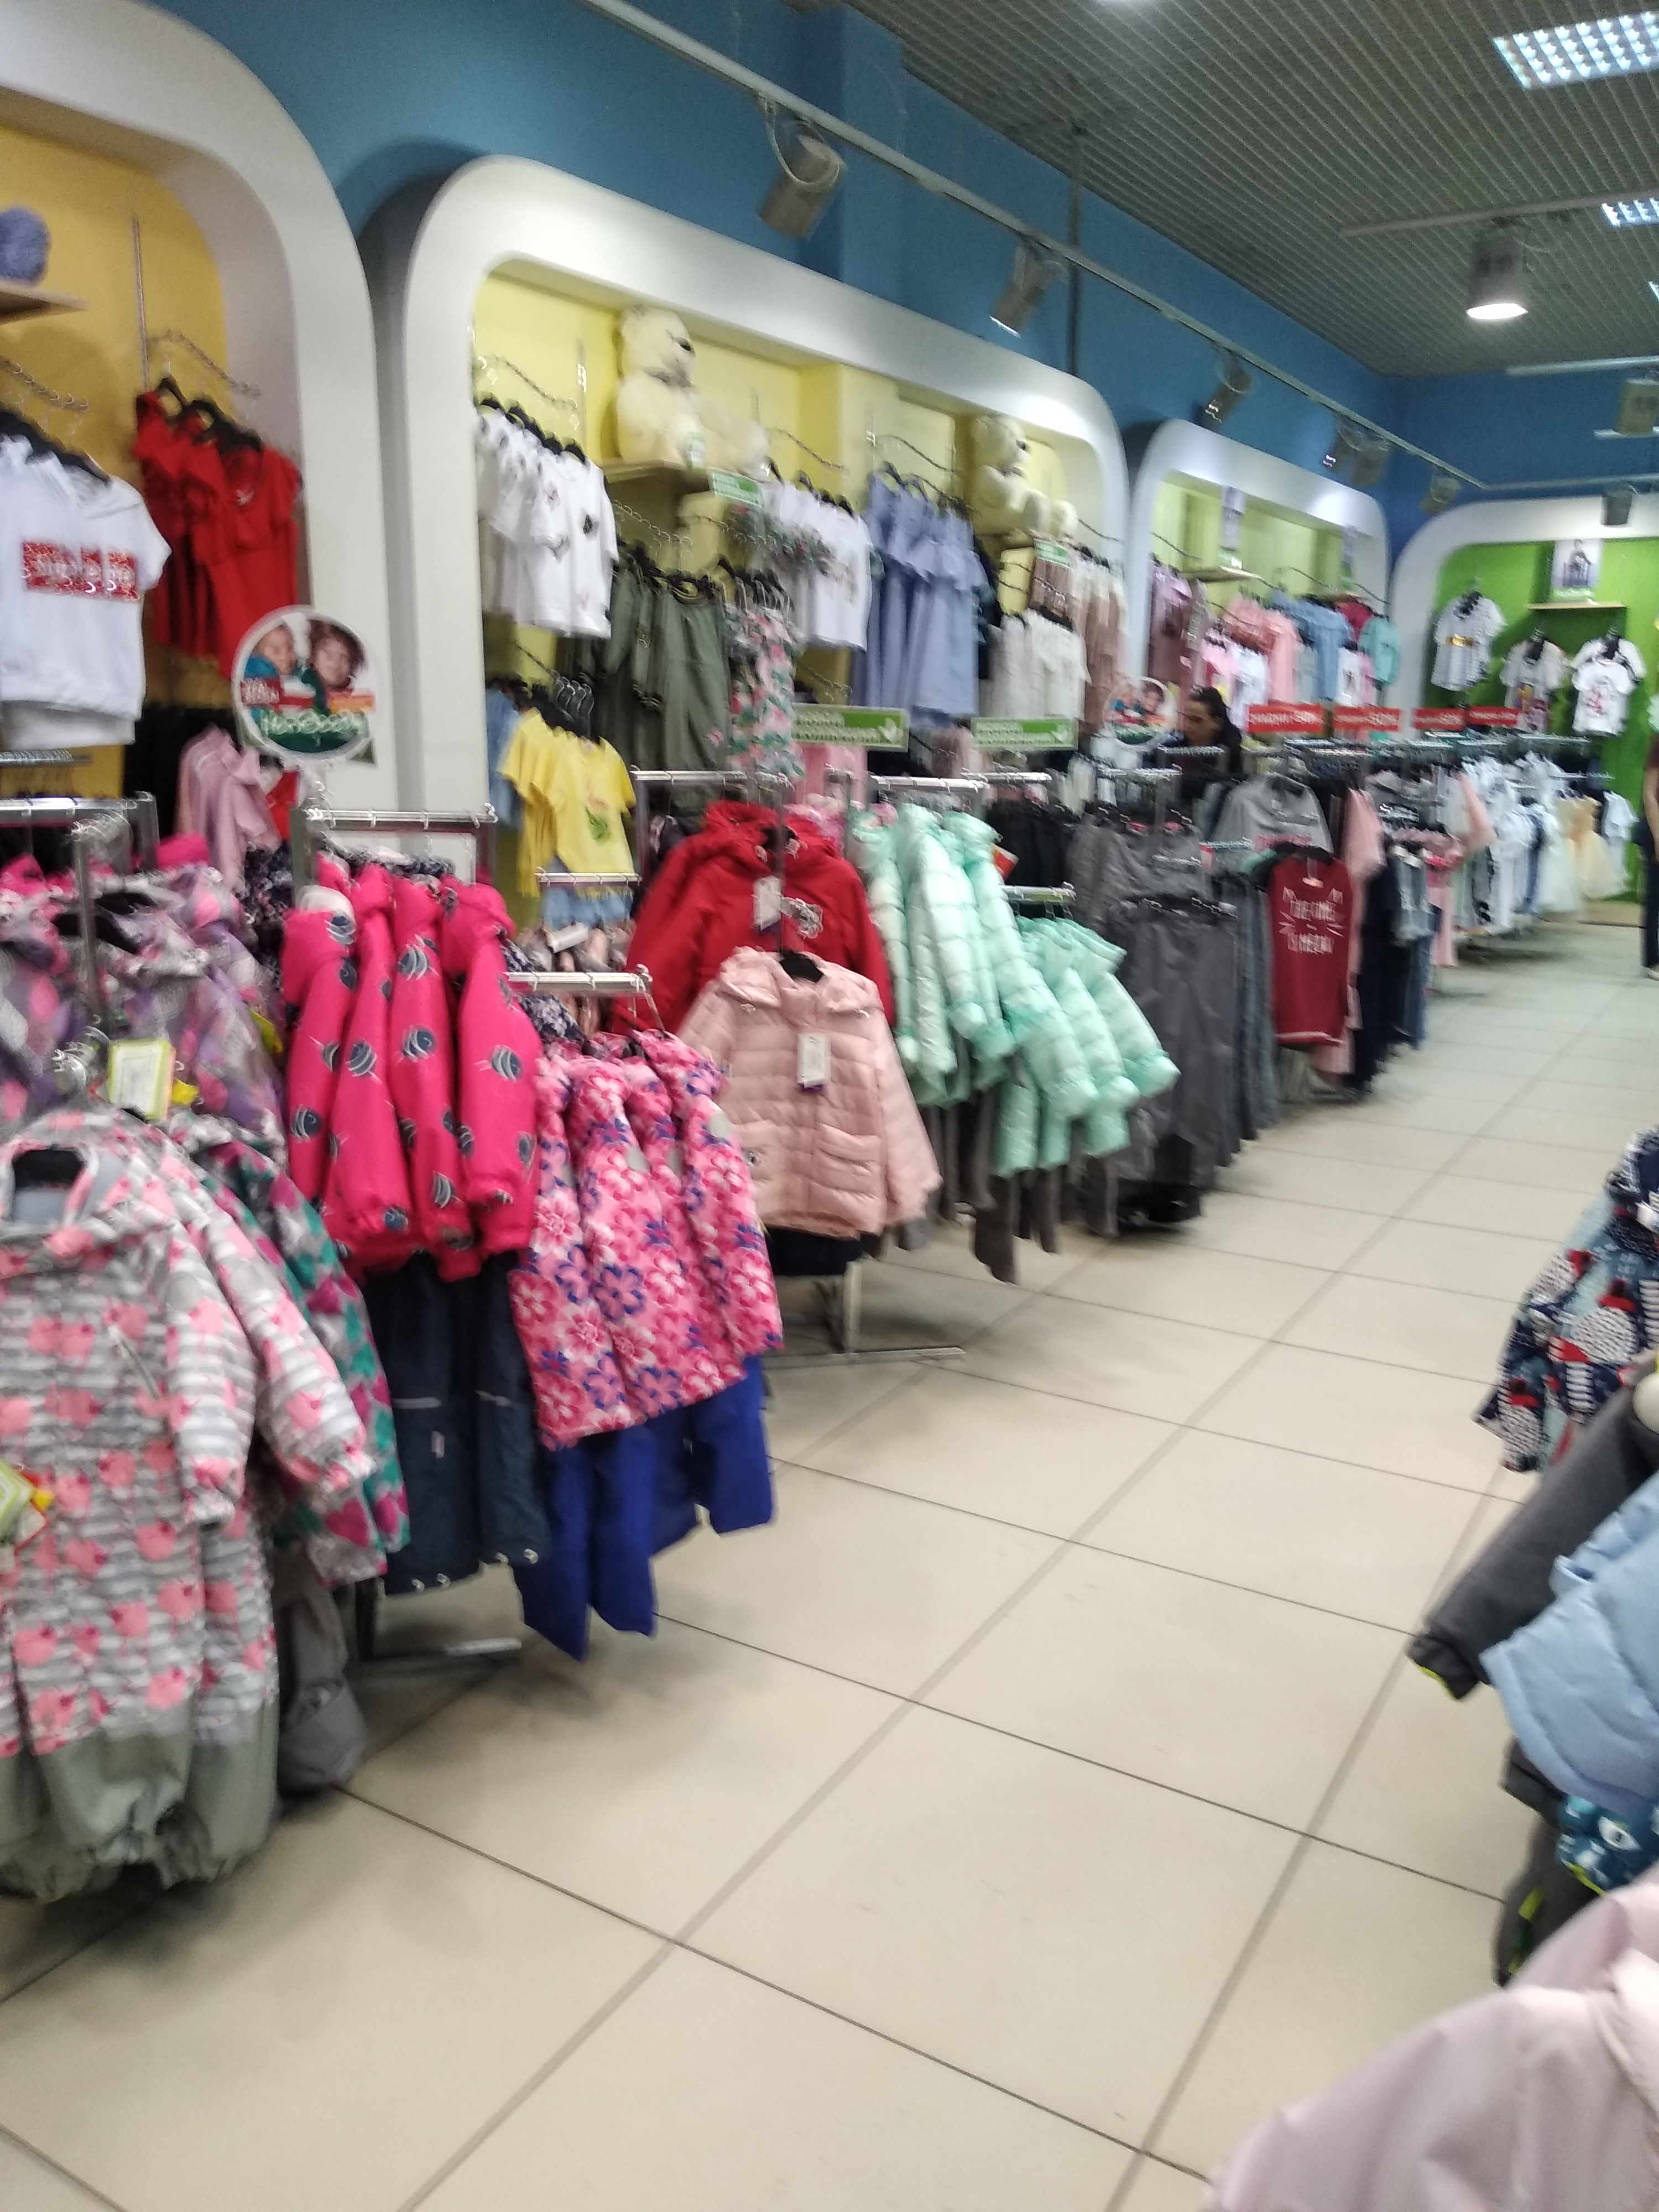 I am looking for wholesale children and newborn clothing suppliers from 1 to 14 years old. Guangzhou, Turkey, Korea production is preferred.